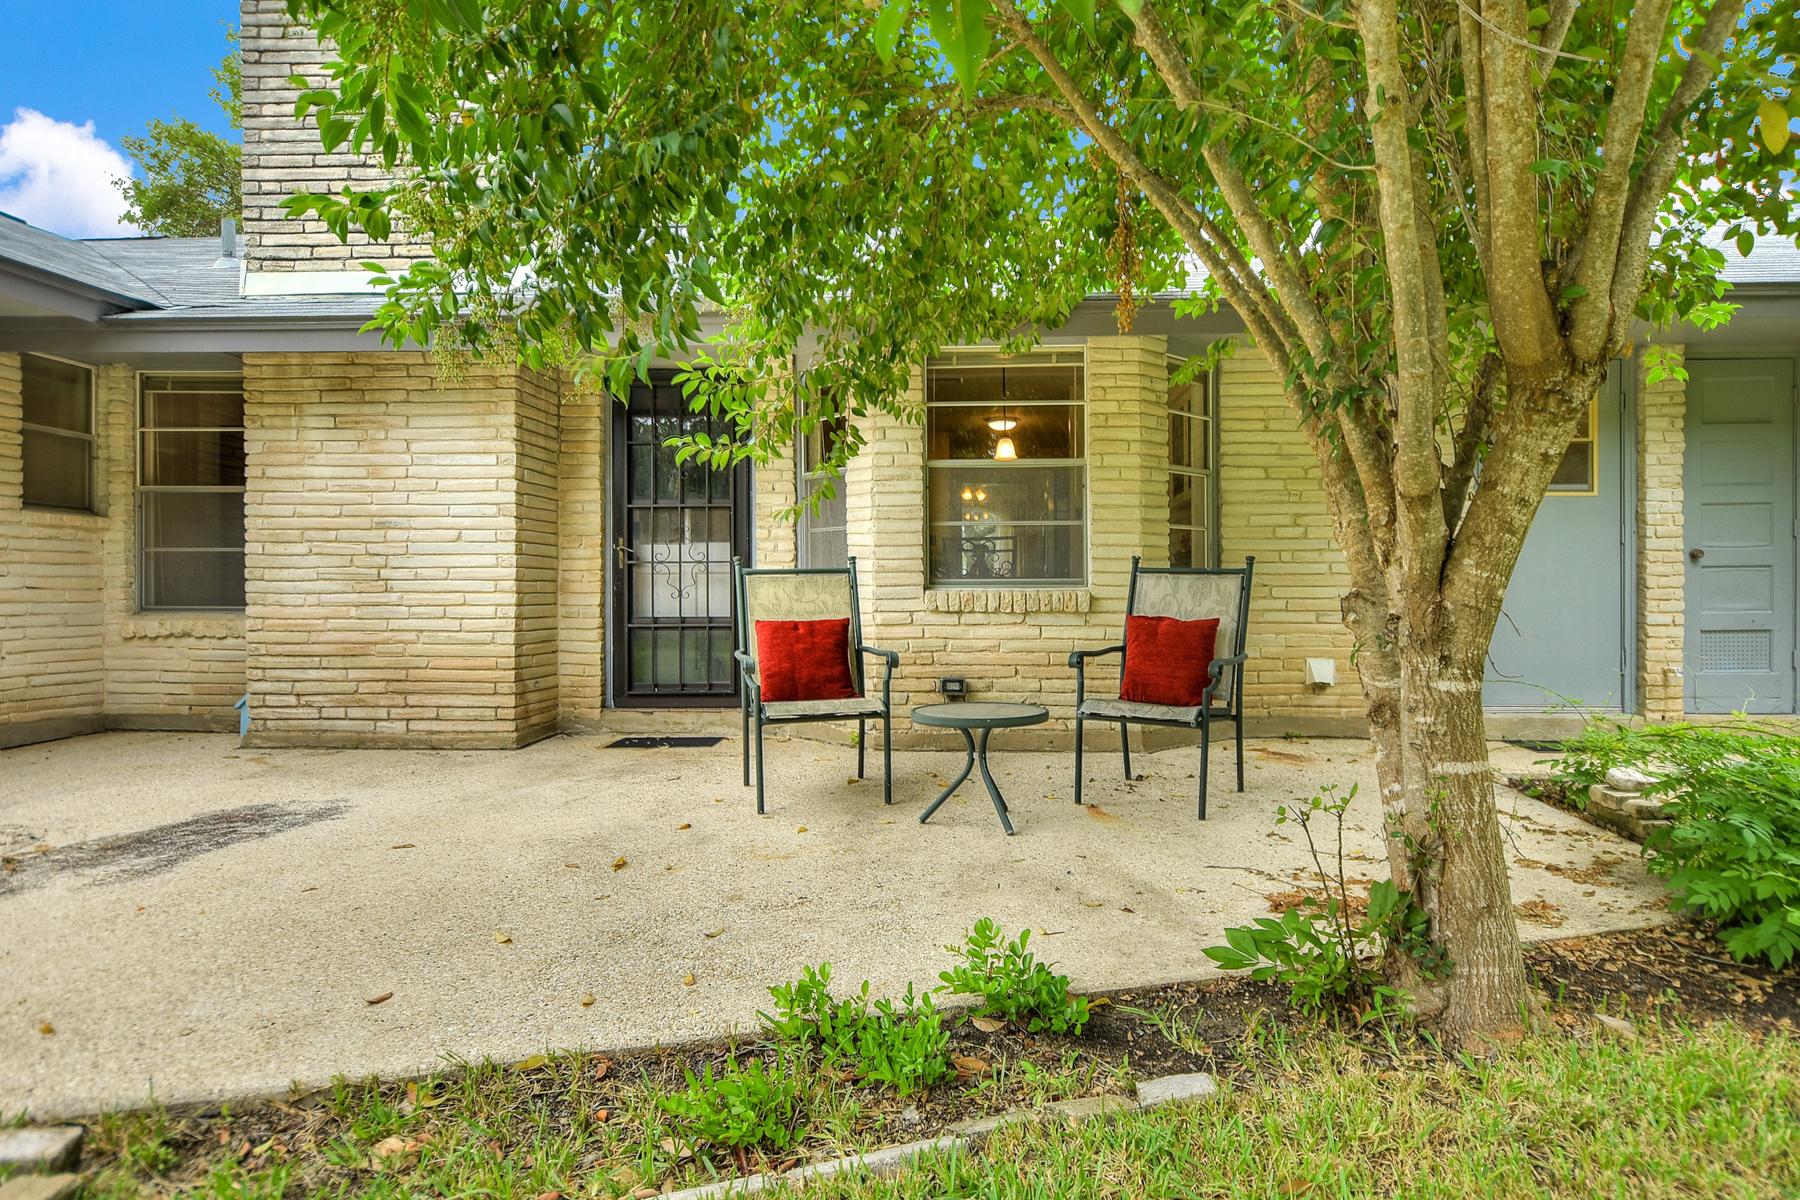 Additional photo for property listing at Lovely Home in Regency Place 10218 Severn Rd San Antonio, Texas 78217 Estados Unidos